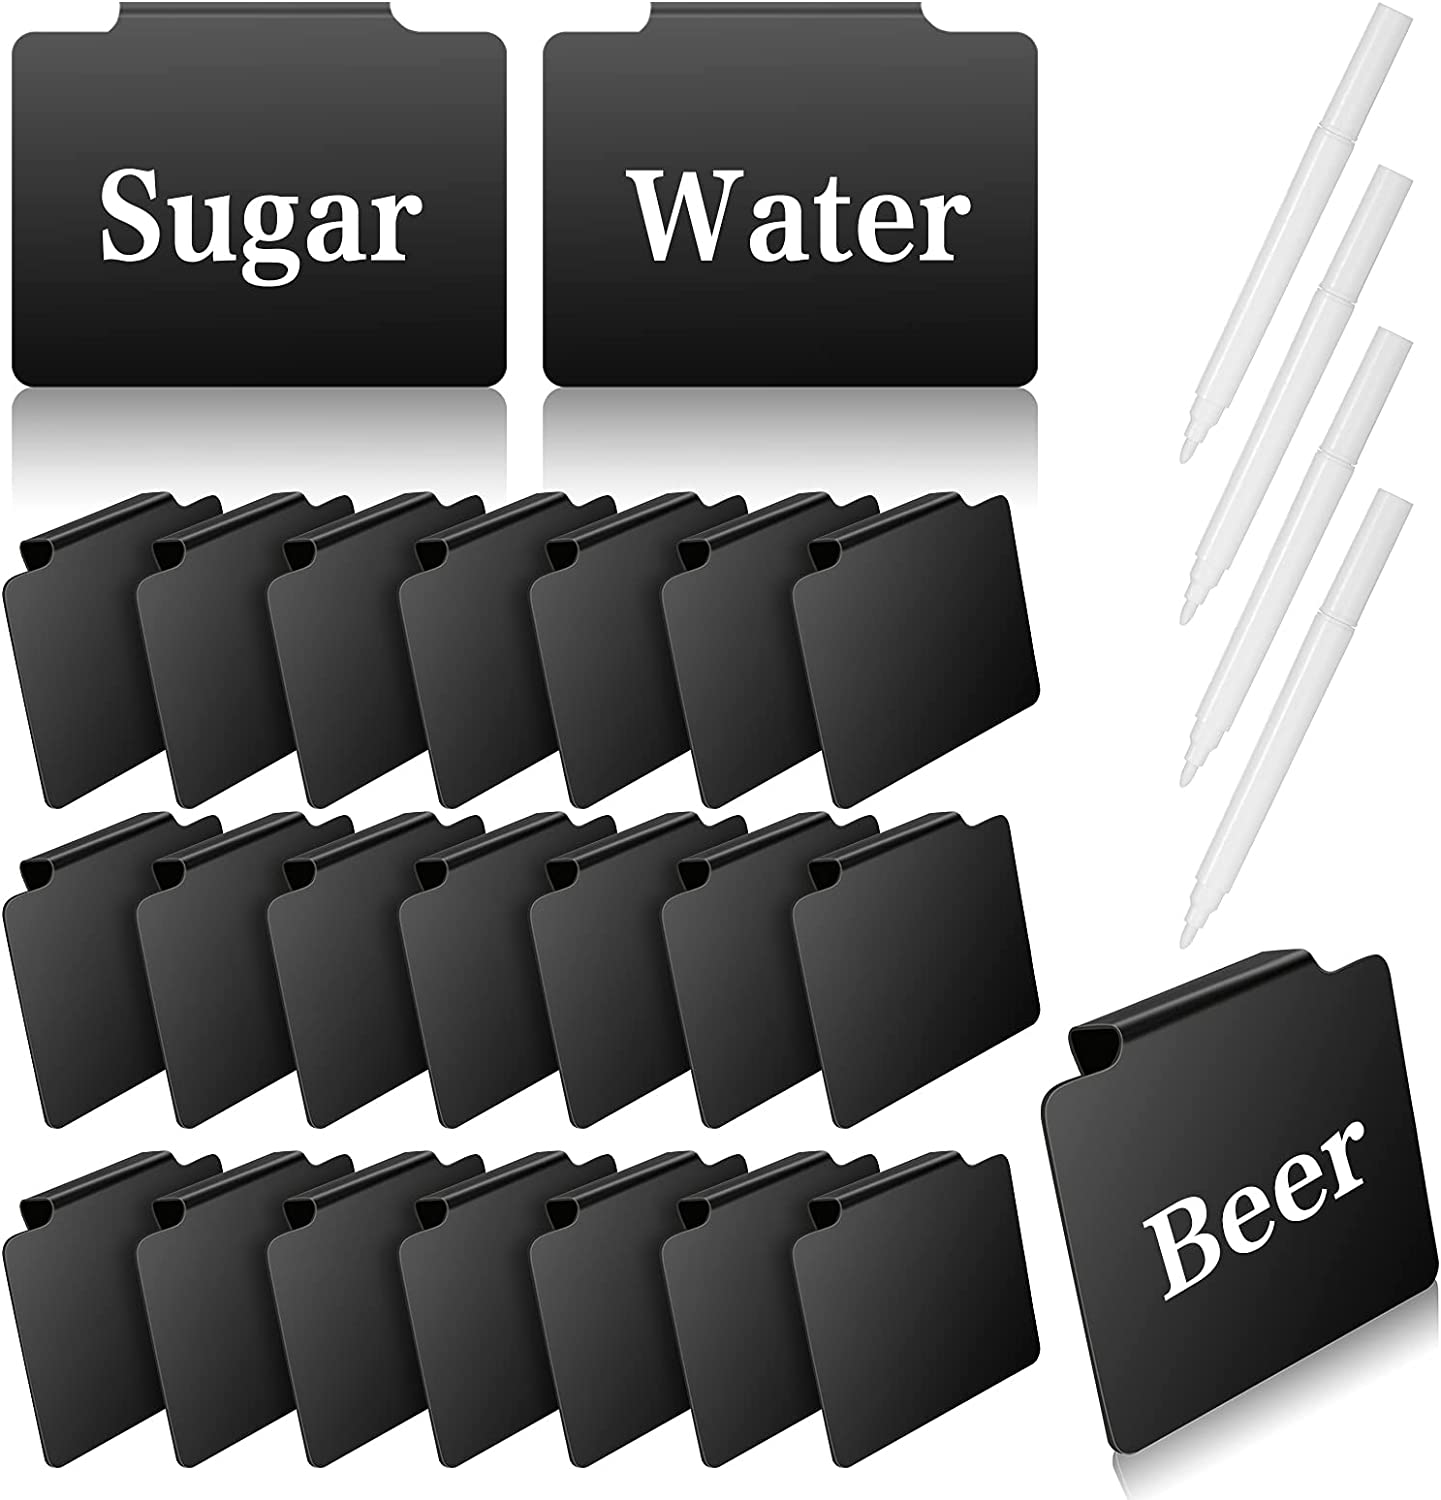 24 Pieces Basket Labels Holders for Storage Bins, Black Label Clips Kitchen Label Holders Pantry Removable Labels Clips Finish with 4 Pieces Erasable White Markers for Kitchen Pantry Supplies